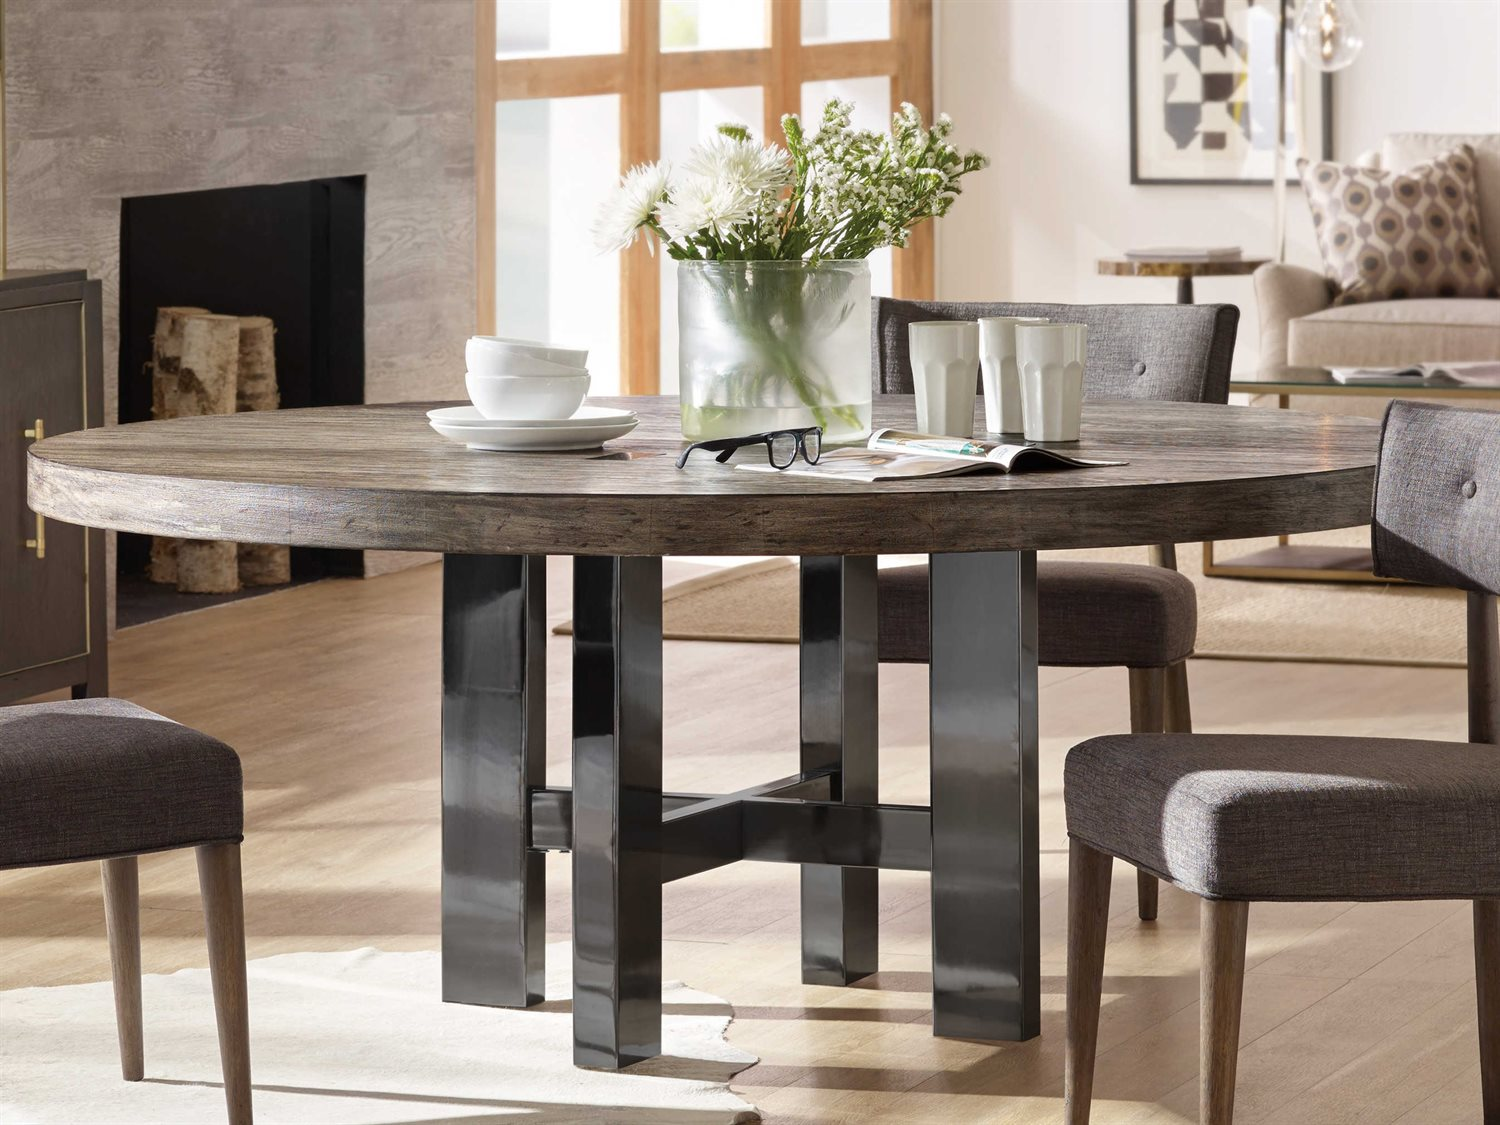 Hooker Furniture Curata Medium Greige With Black Nickel 72 Wide Round Dining Table Hoo160075211mwd